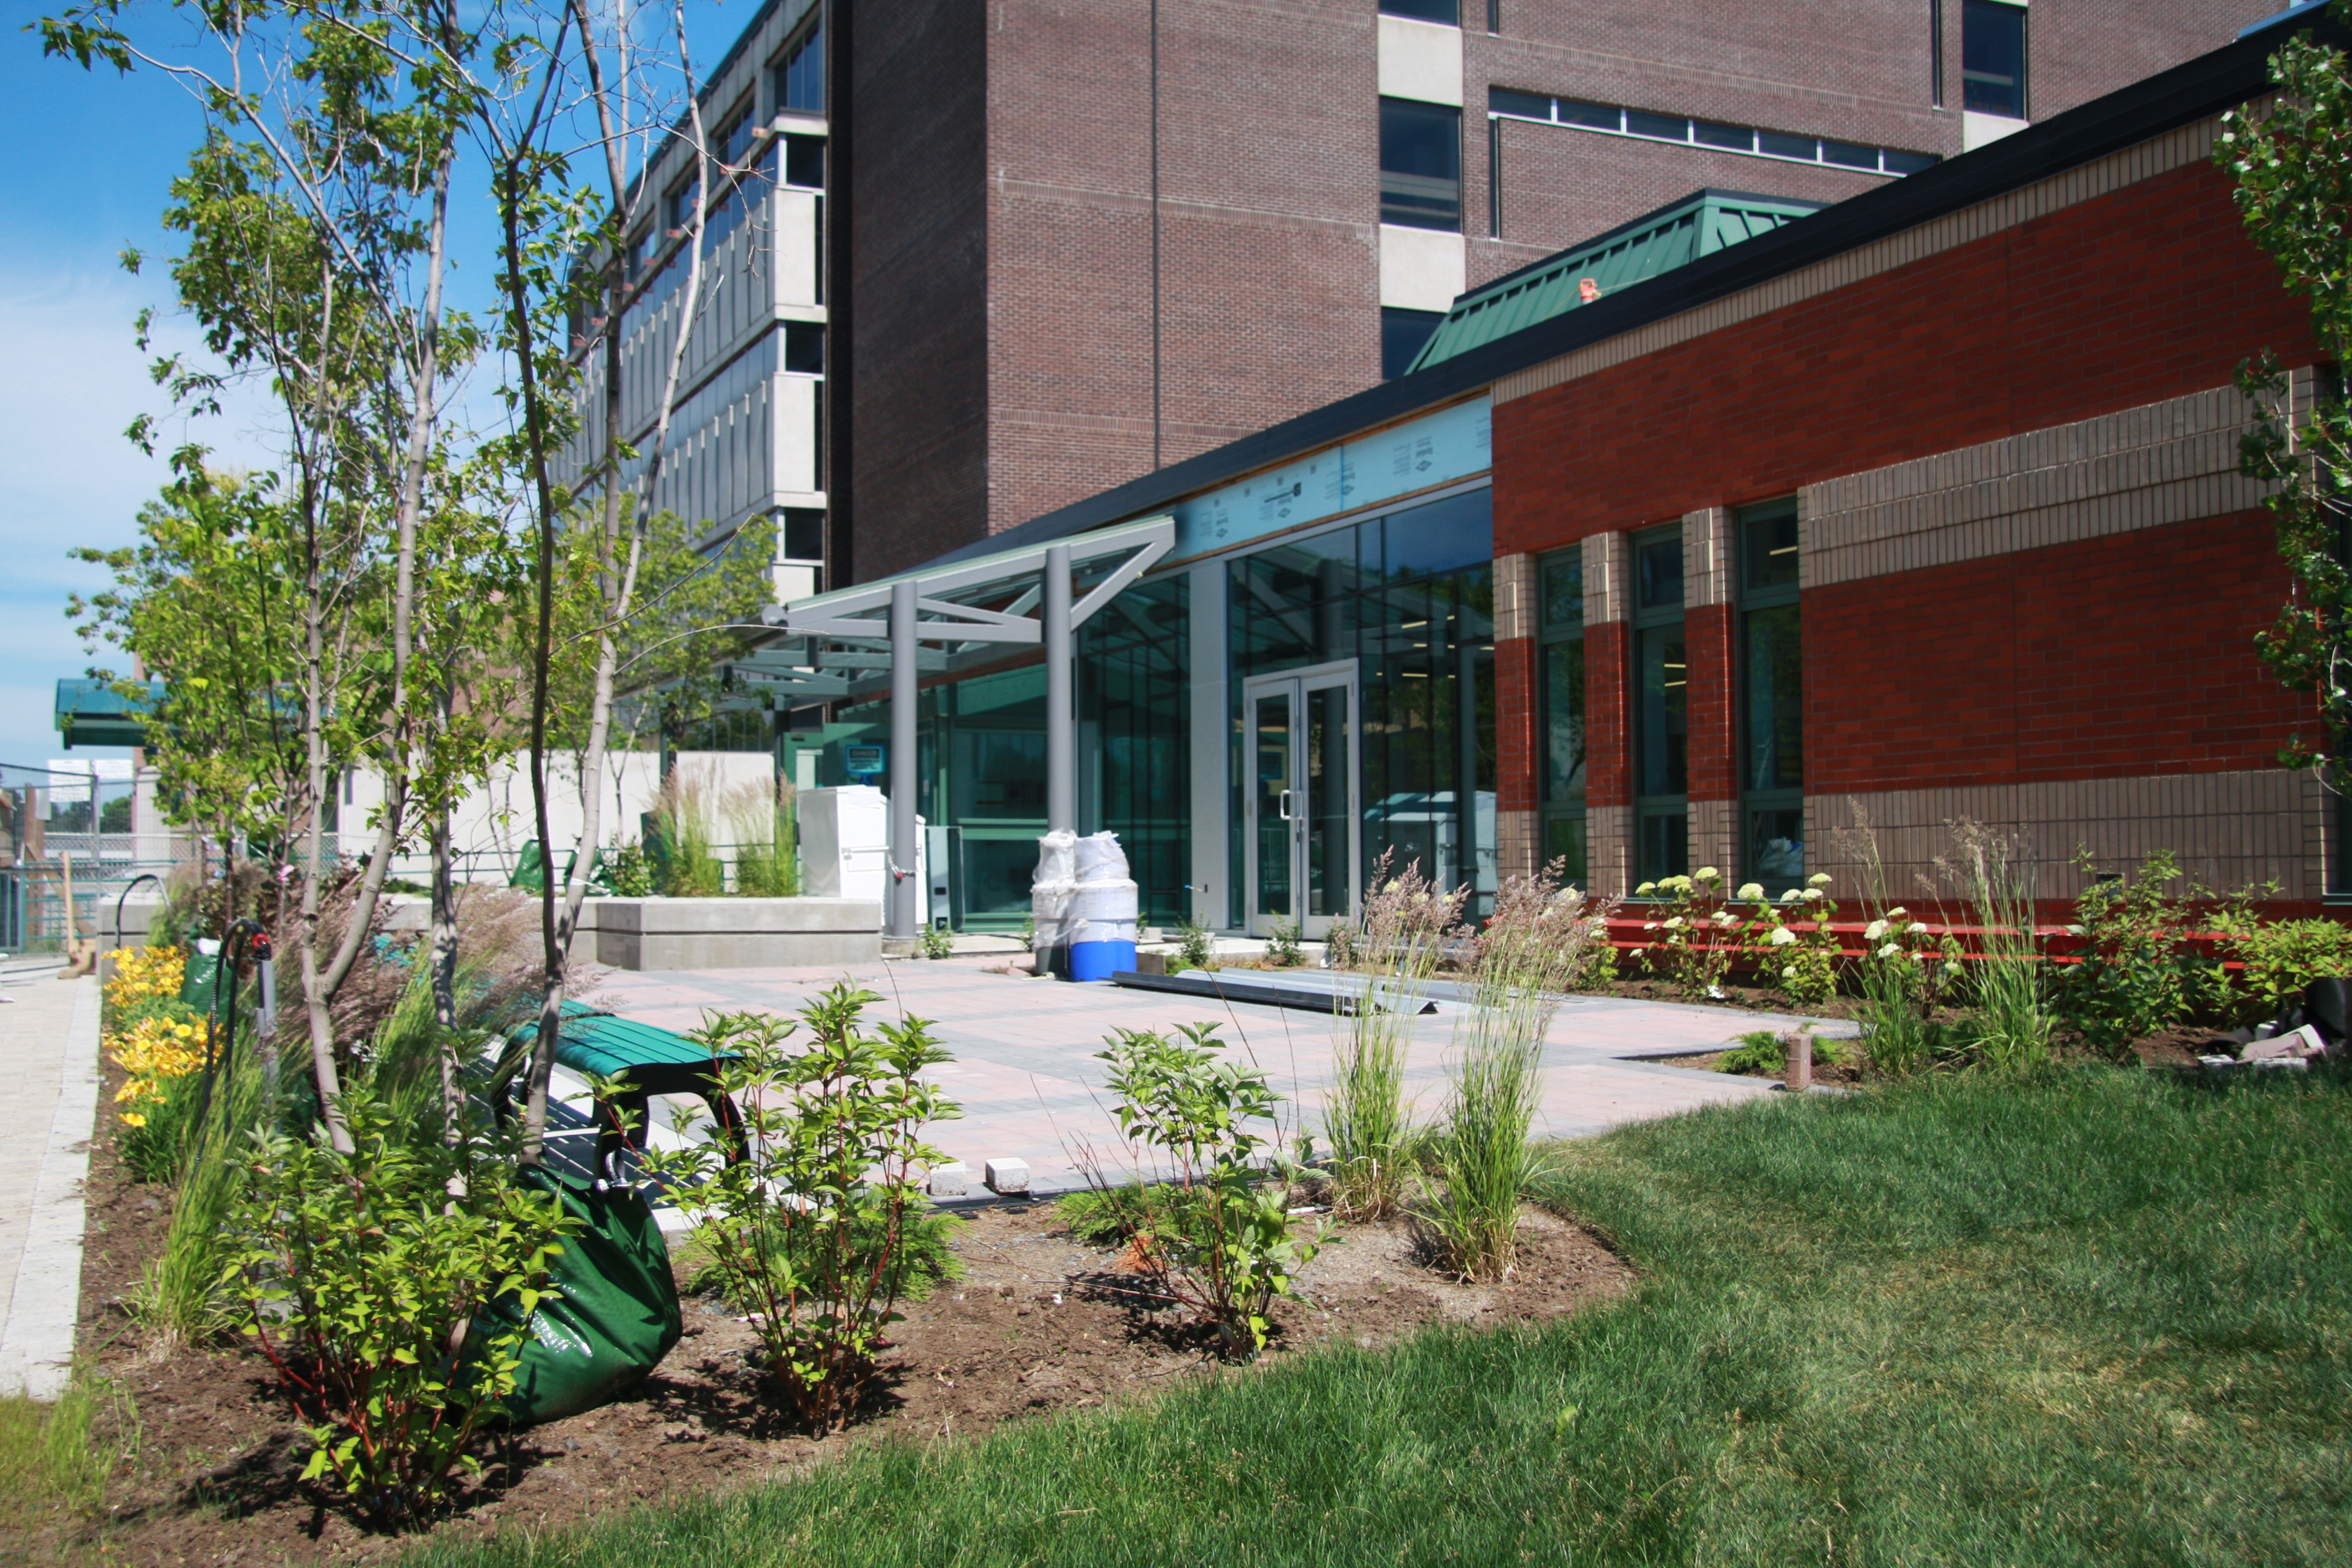 Photo of the exterior of the CASES building, back patio